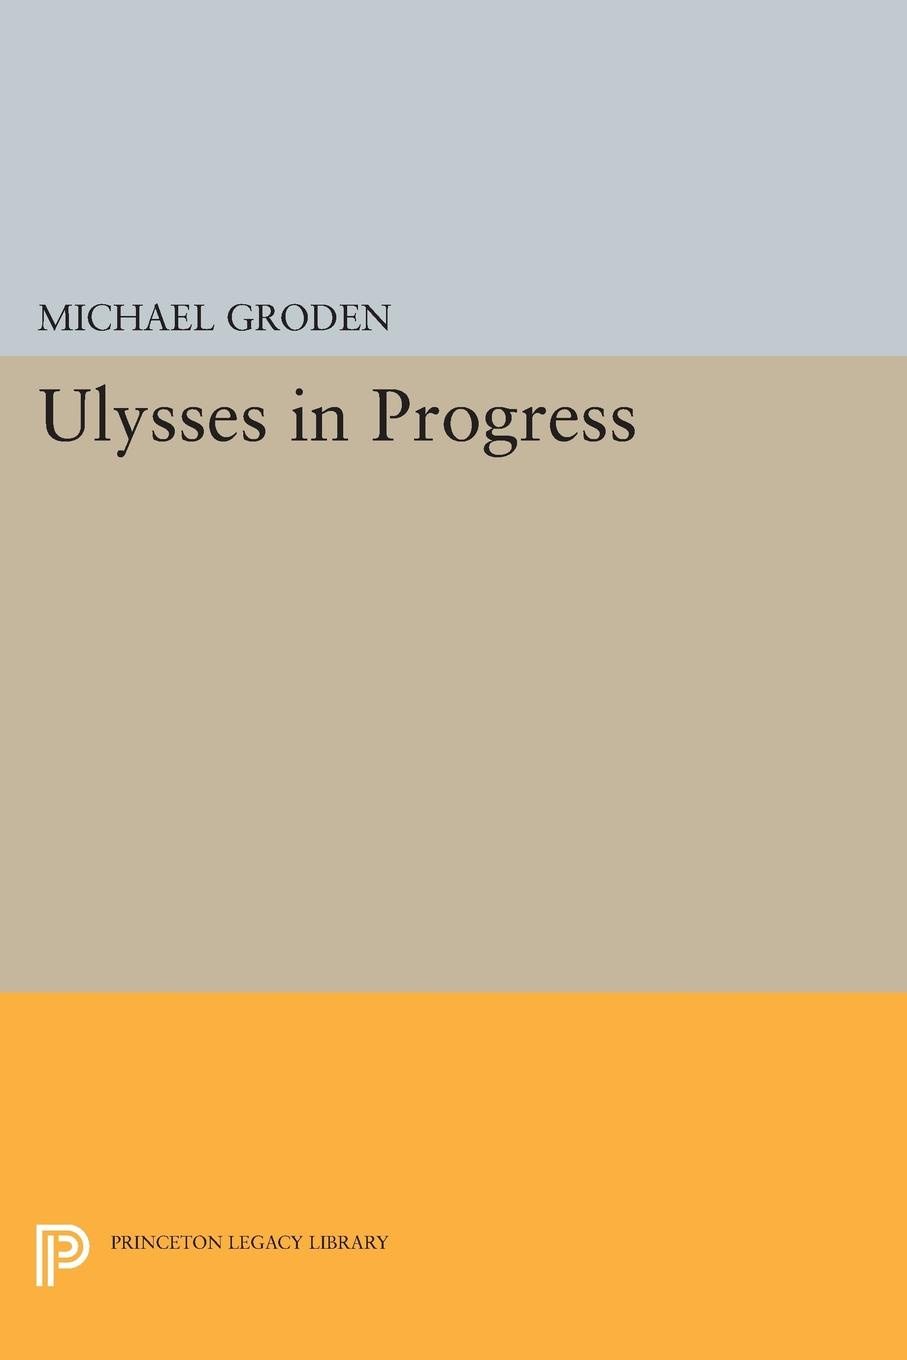 Michael Groden ULYSSES in Progress ajurmotts g zannotti william n joyce fishing derby poems in princeton tufts